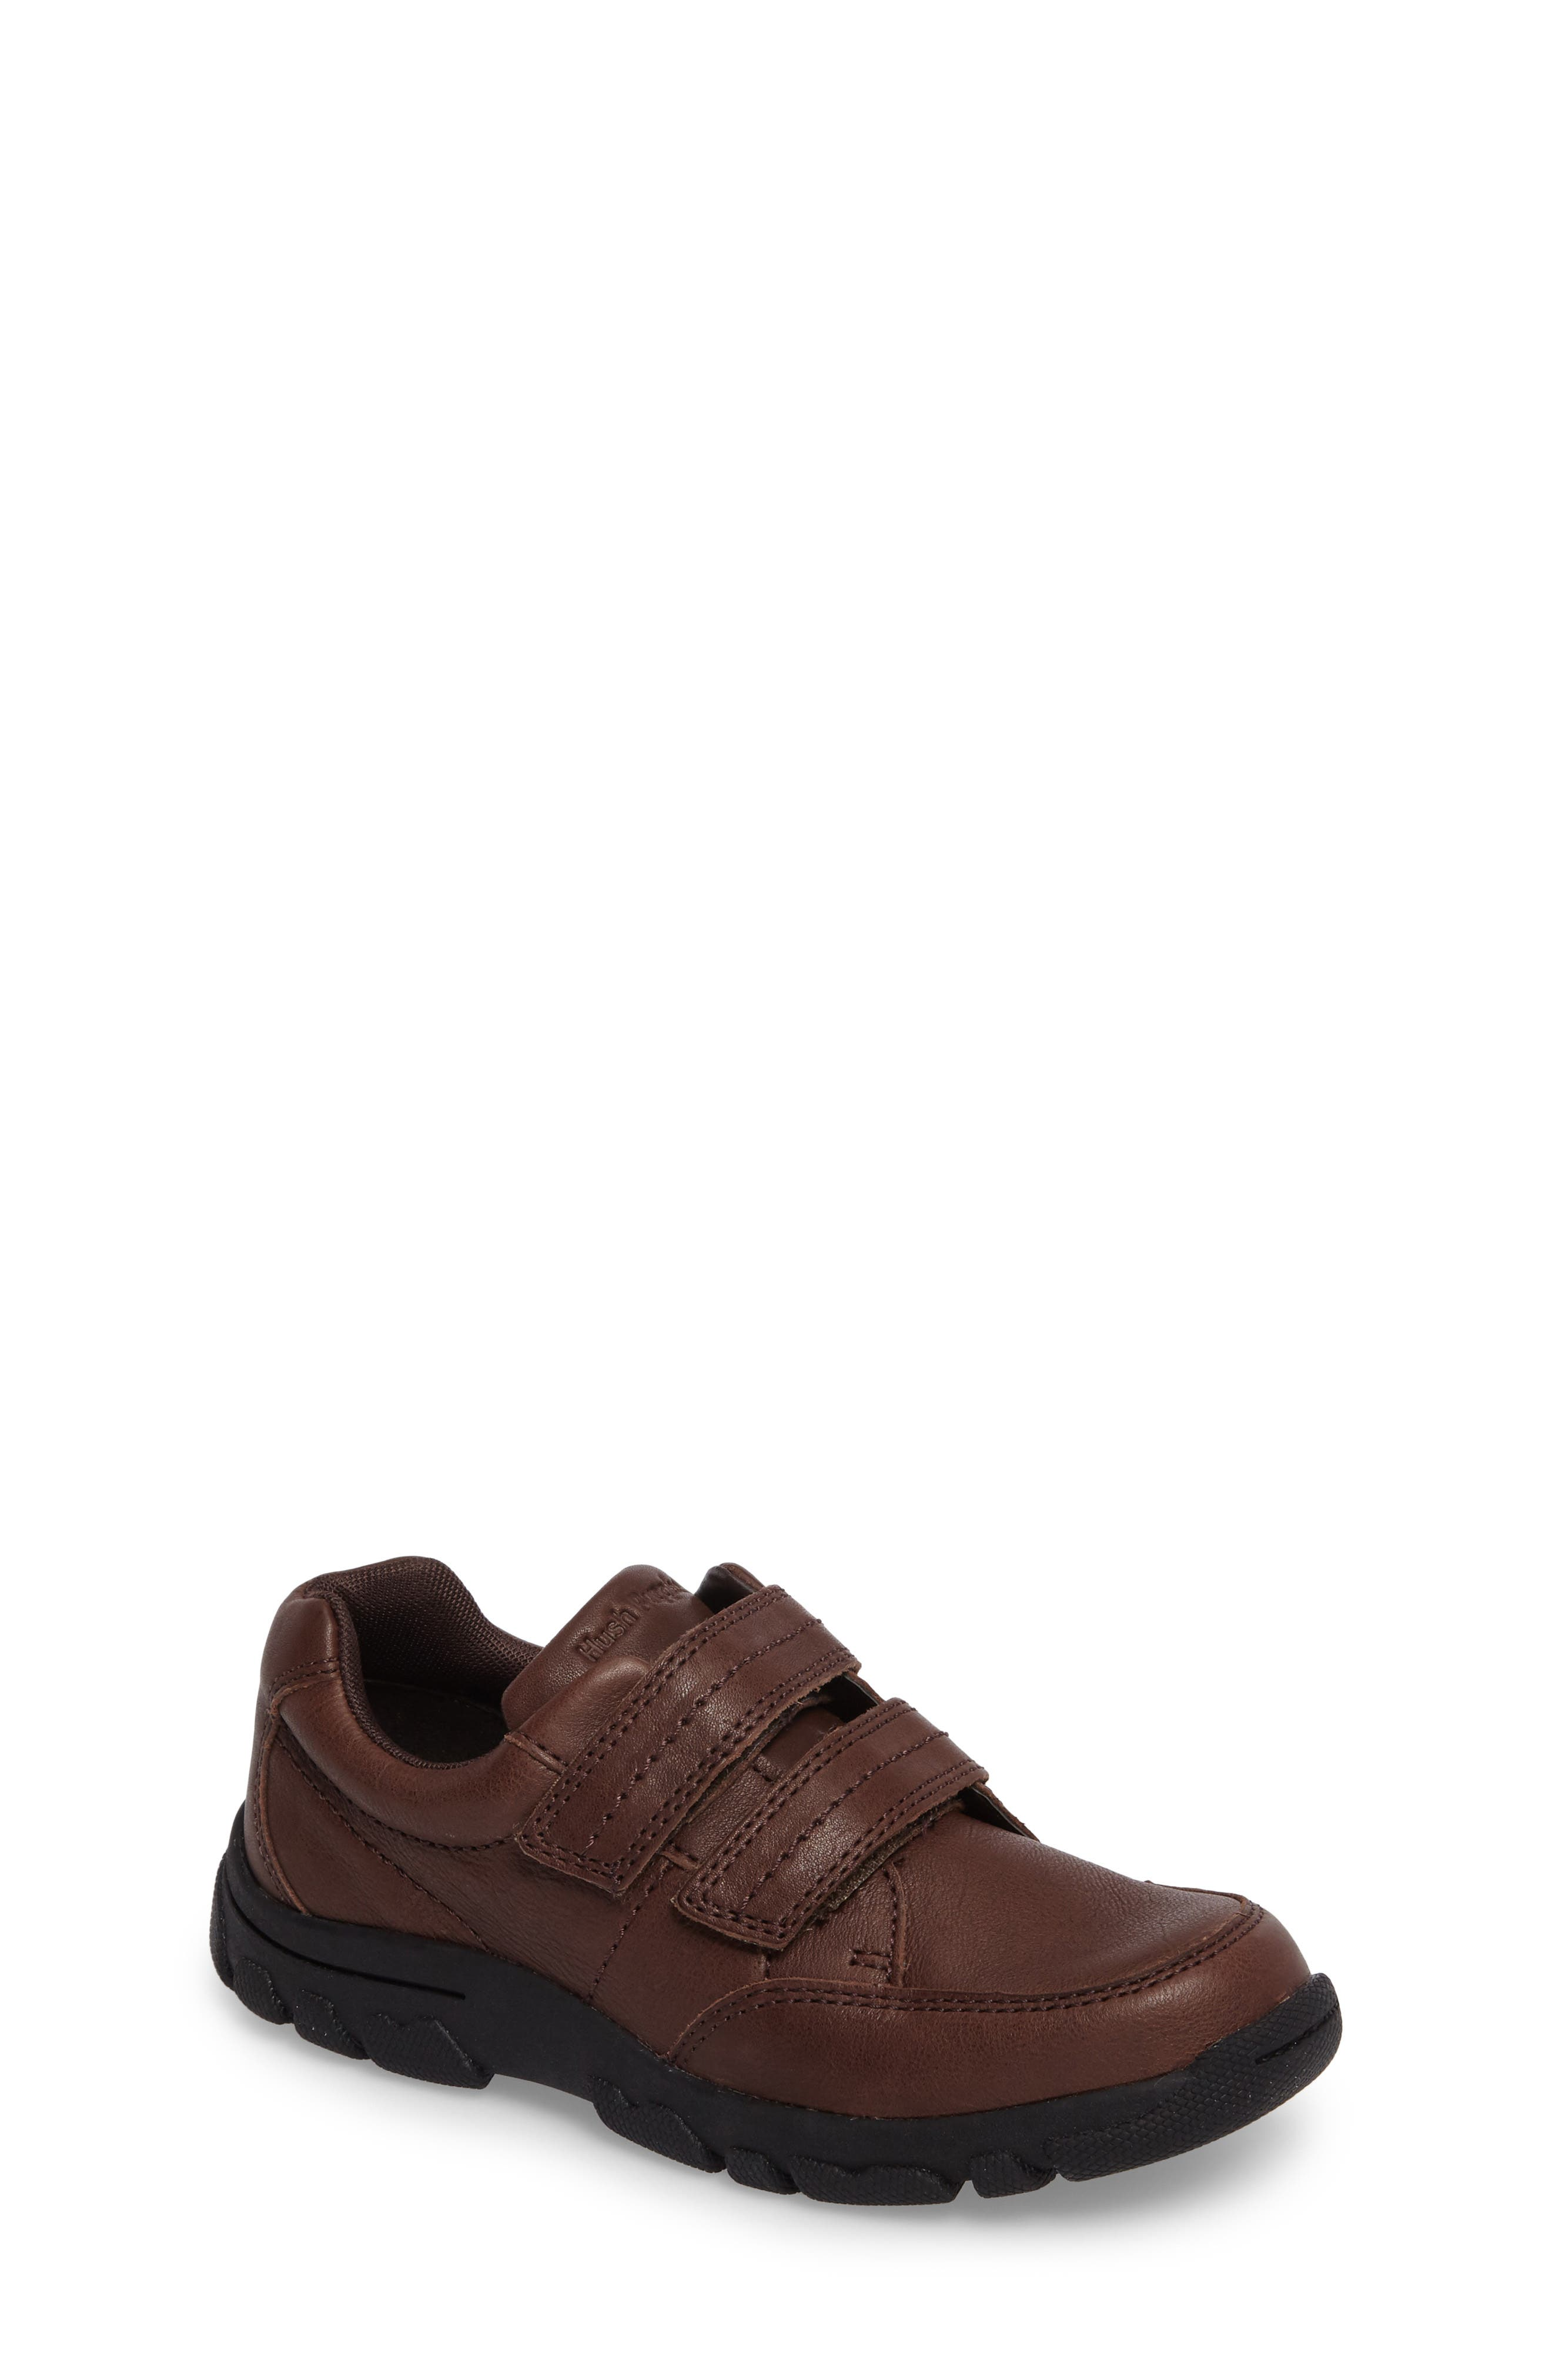 Jace Dress Sneaker,                         Main,                         color, Brown Leather